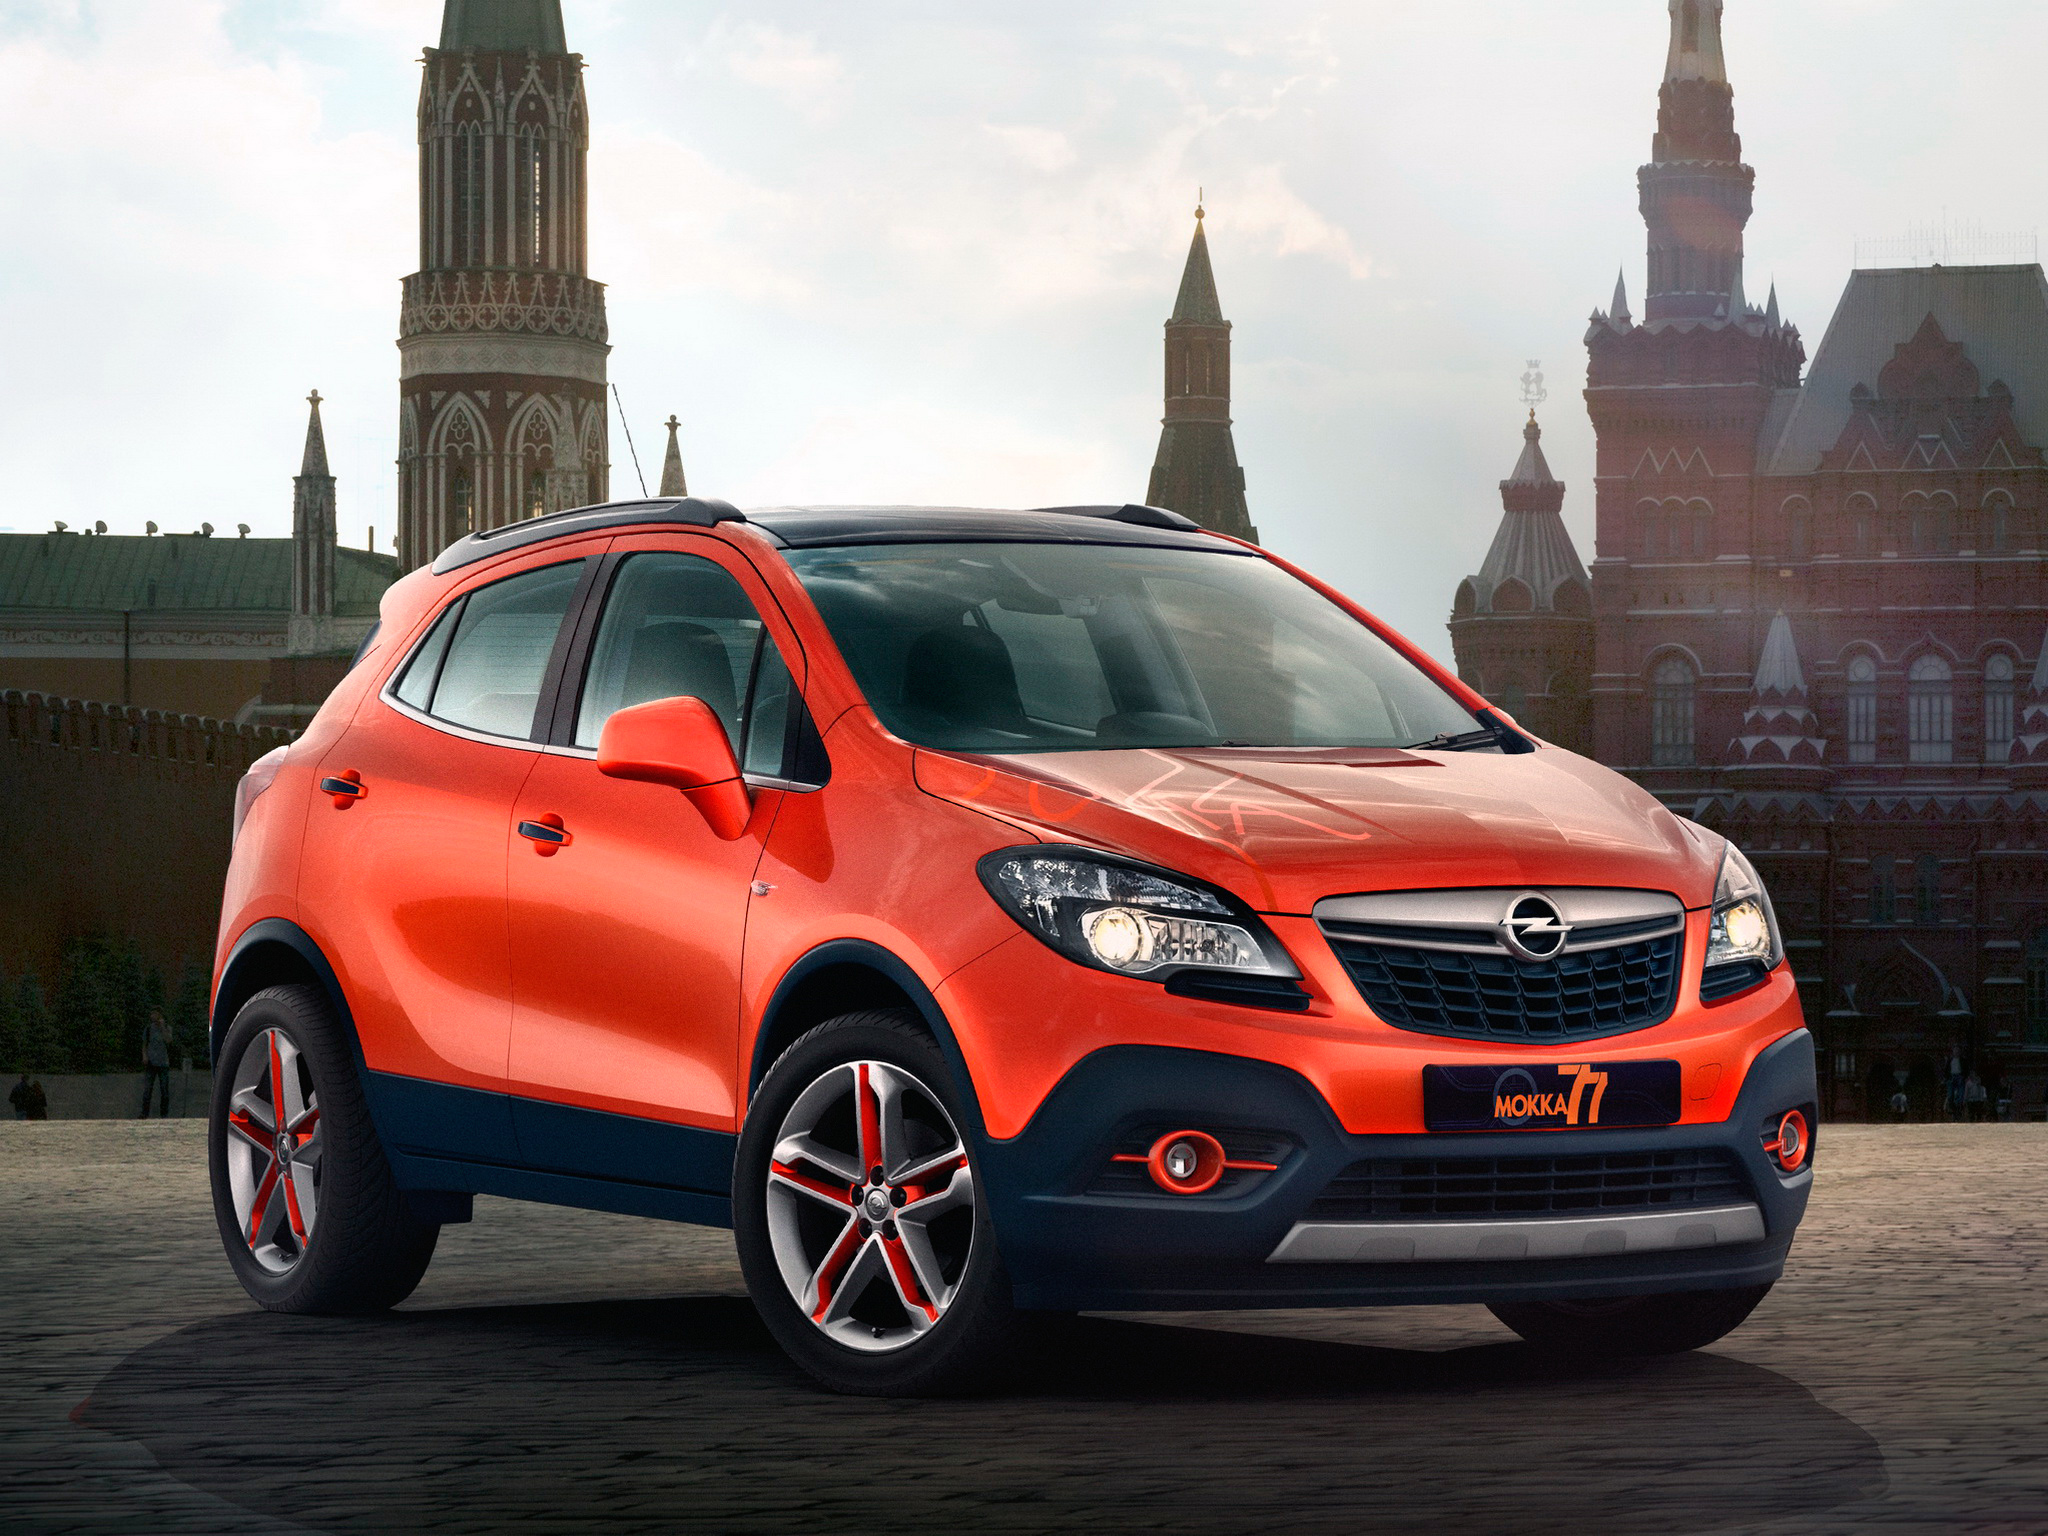 opel mokka registers 300 000 sales becomes 3rd best seller after corsa and astra autoevolution. Black Bedroom Furniture Sets. Home Design Ideas